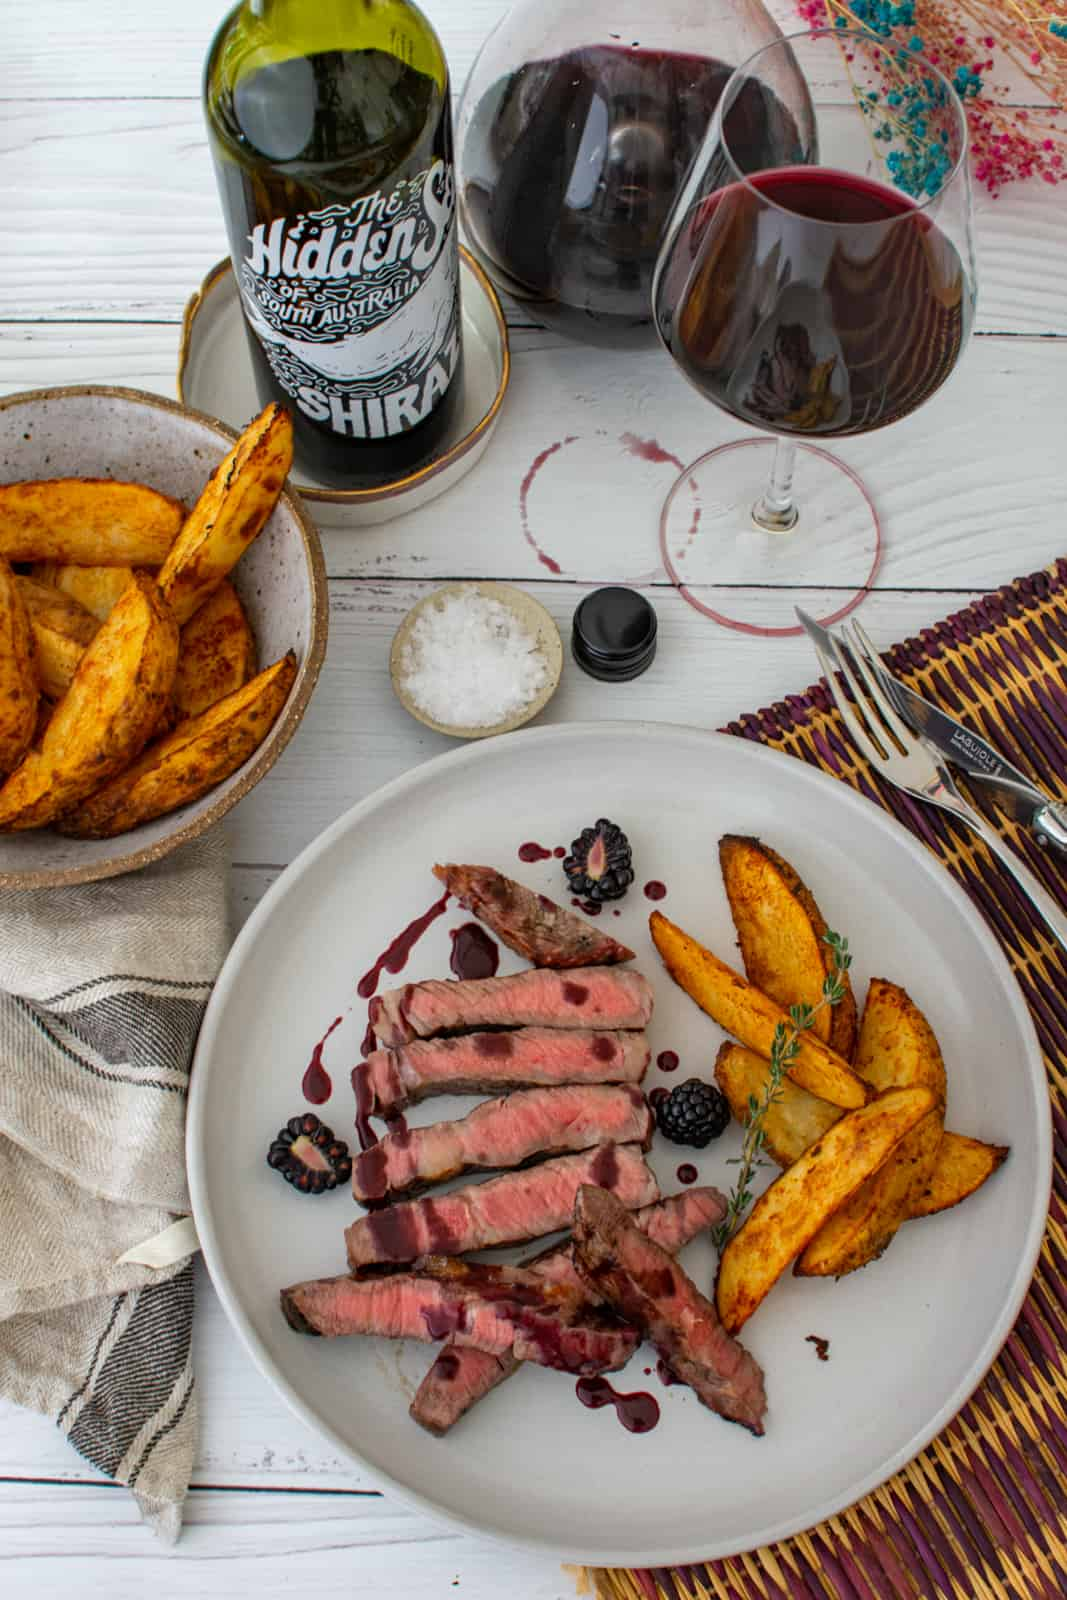 cooked scotch fillet, spicy potato wedges and blackberry jus on a plate with bowl of potato wedges and bottle of hidden sea shiraz next to it